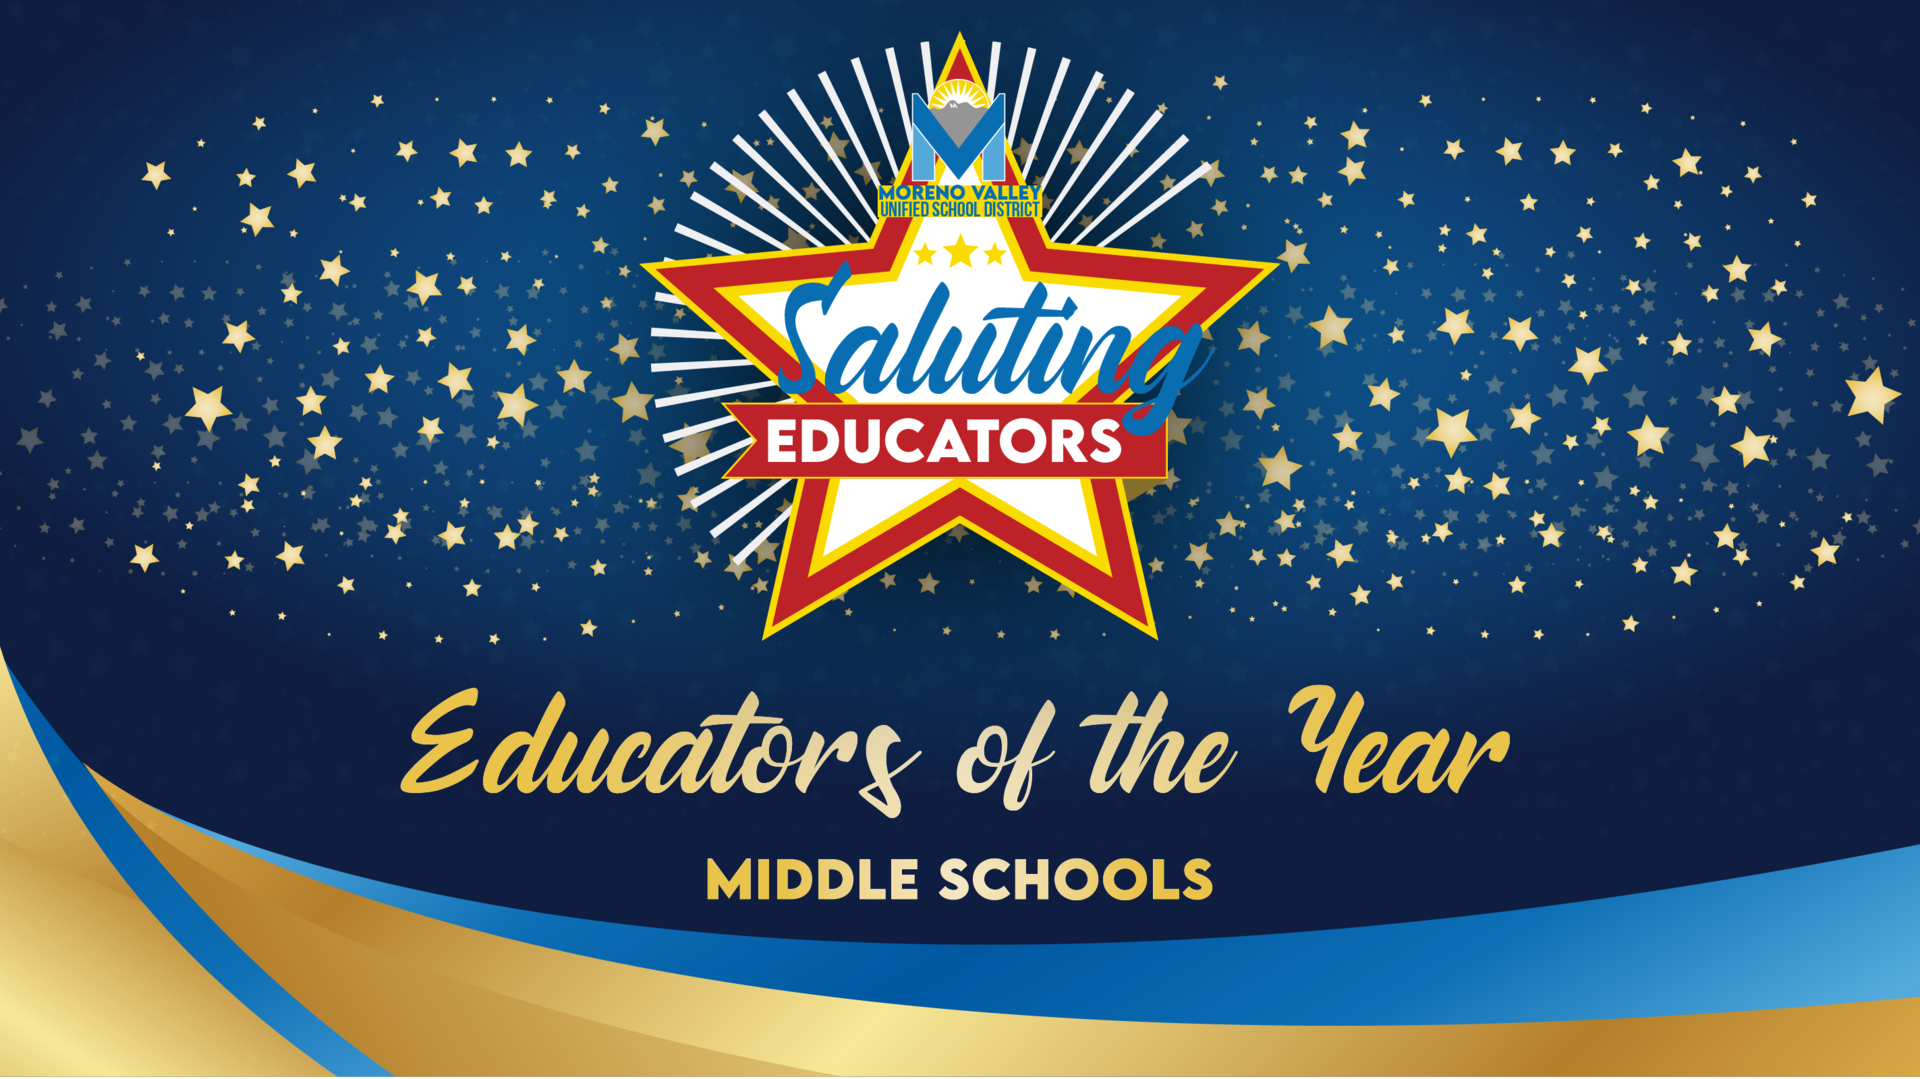 Click here for middle school employees of the year